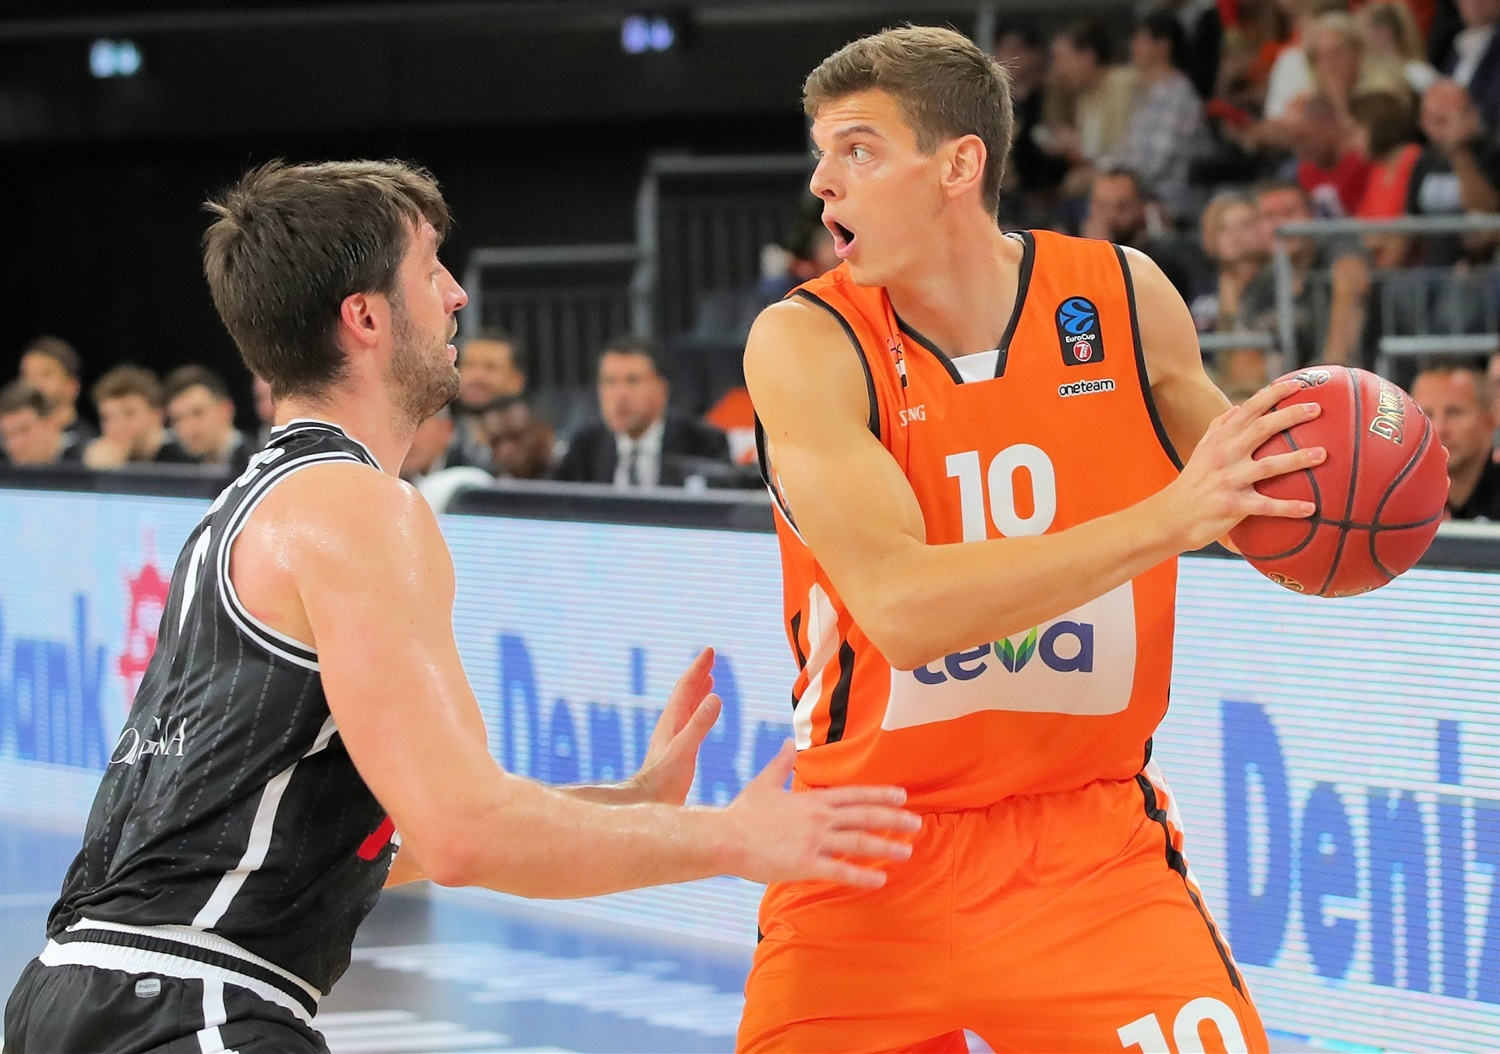 Christoph Philipps - ratiopharm Ulm (photo Ulm - Florian Achberger) - EC19